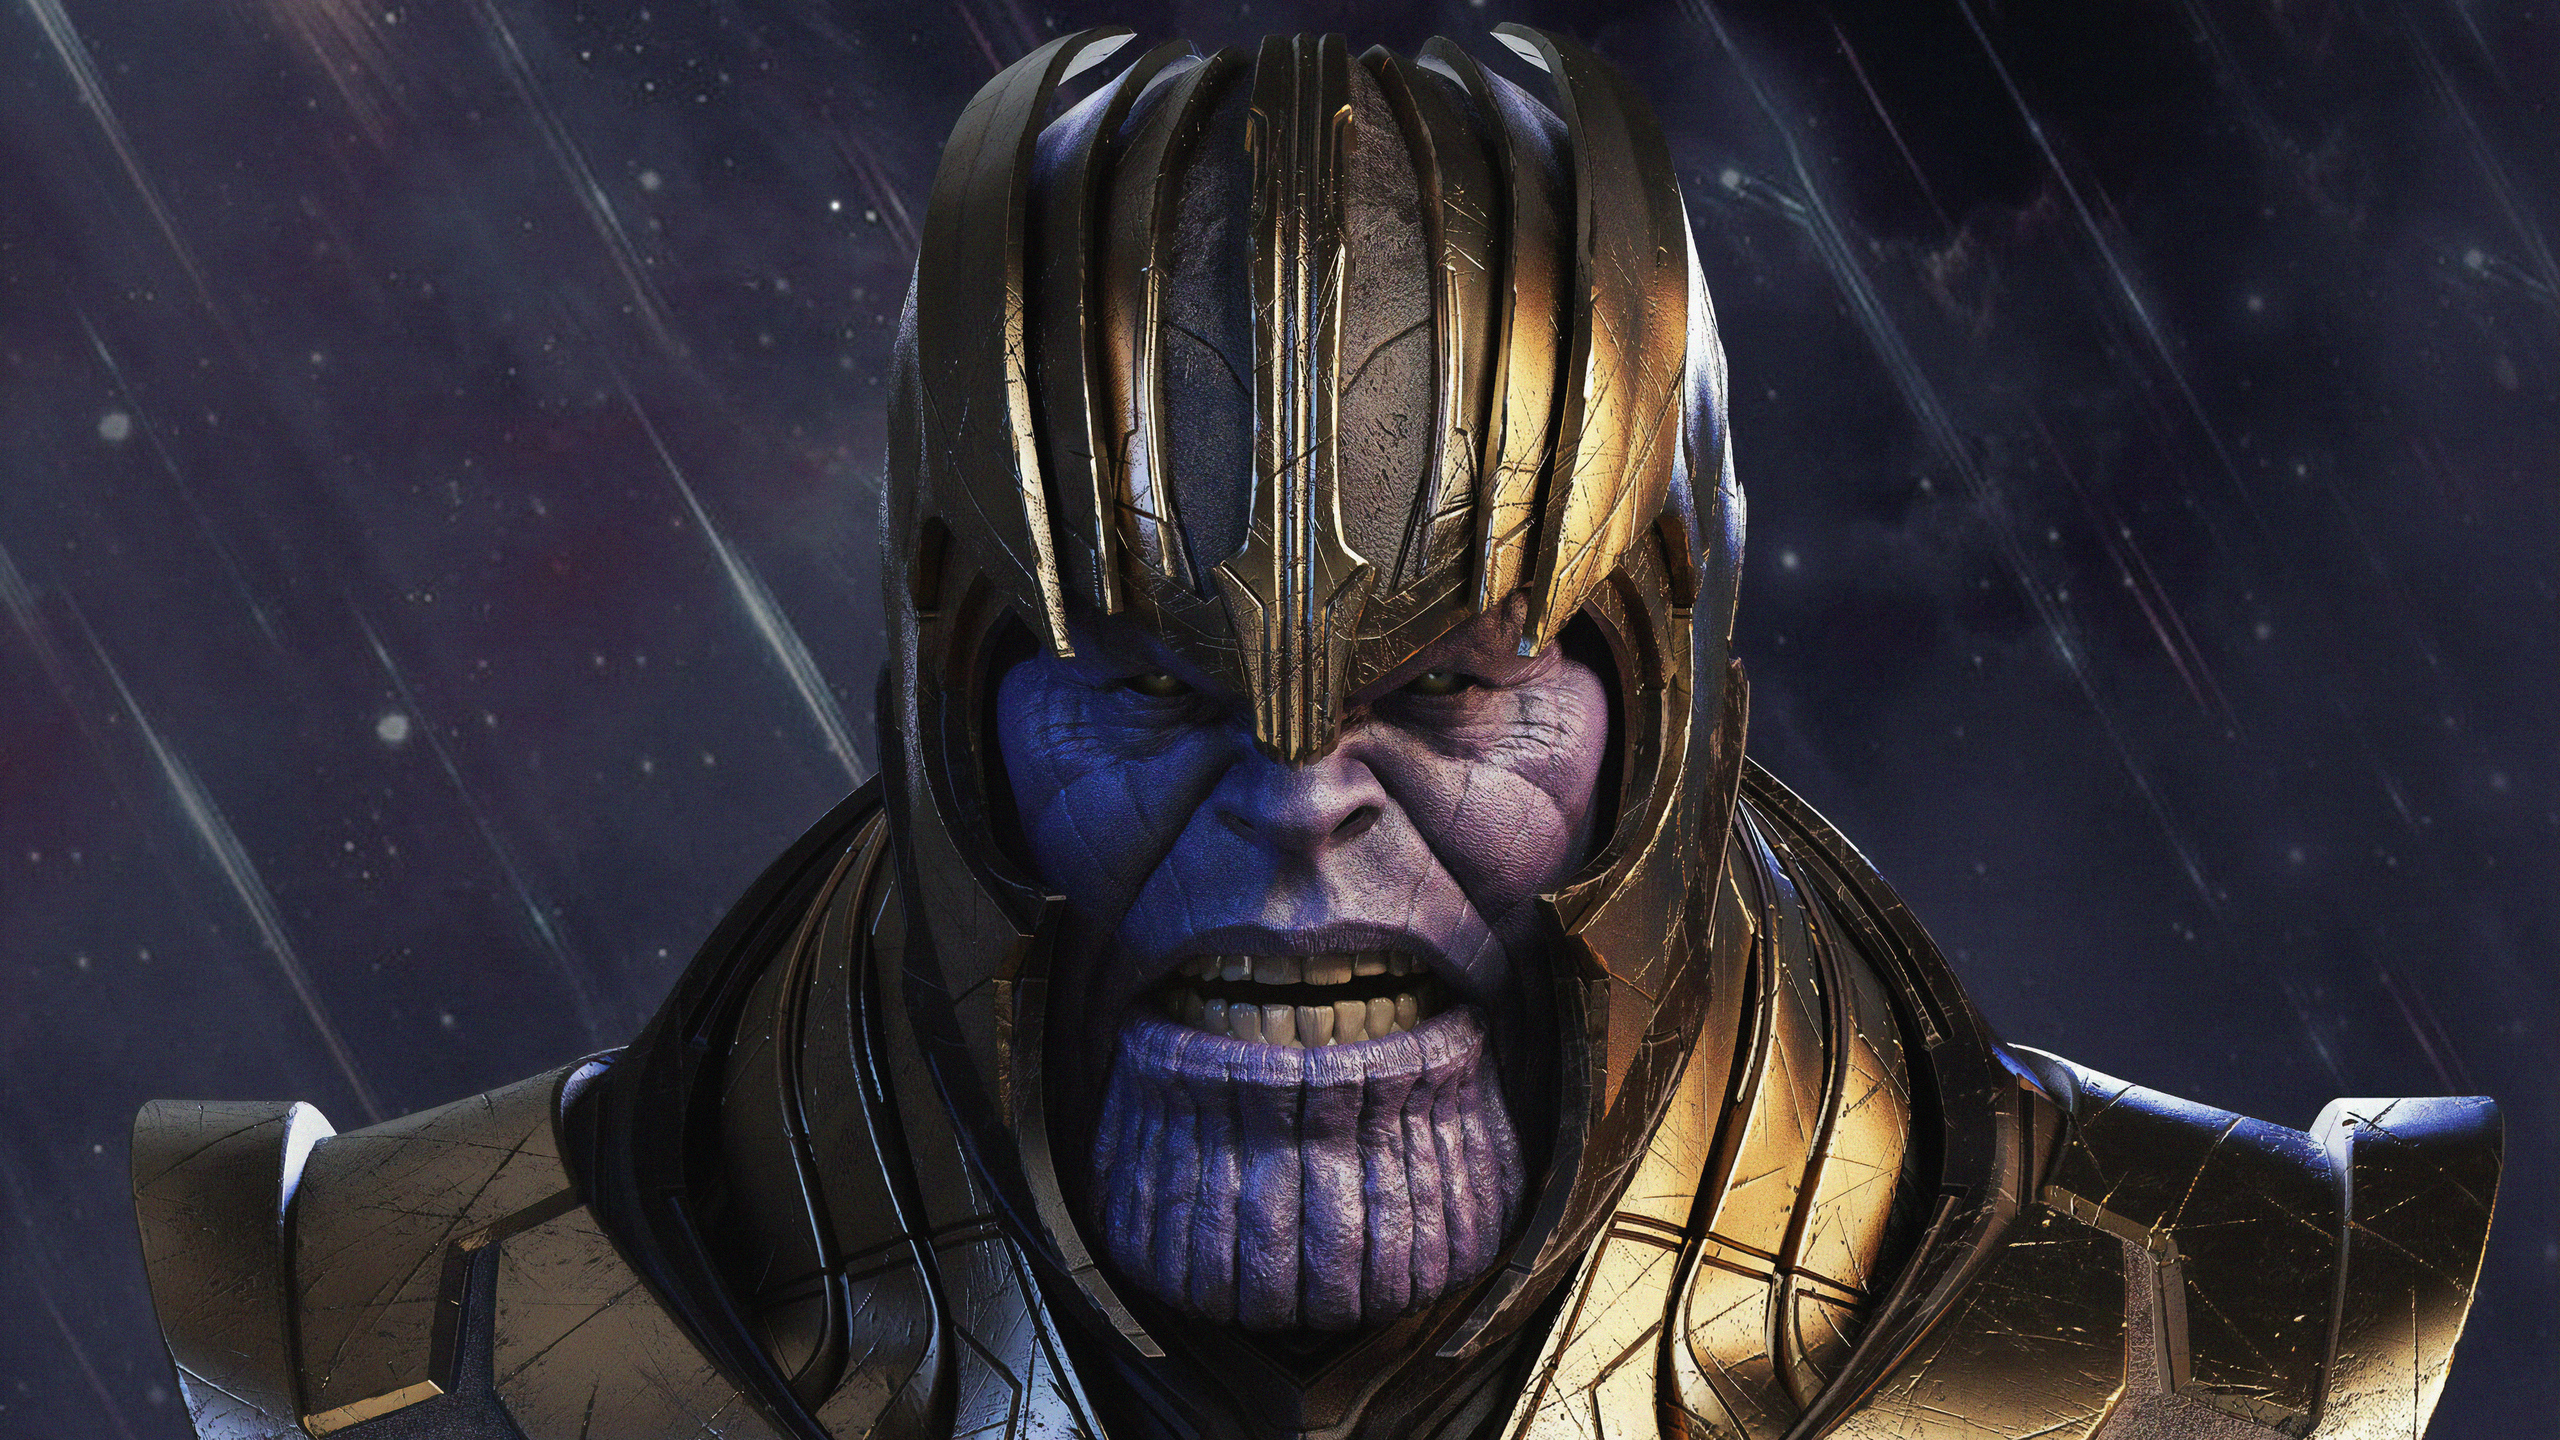 2560x1440 Thanos 4k New Art 1440p Resolution Hd 4k